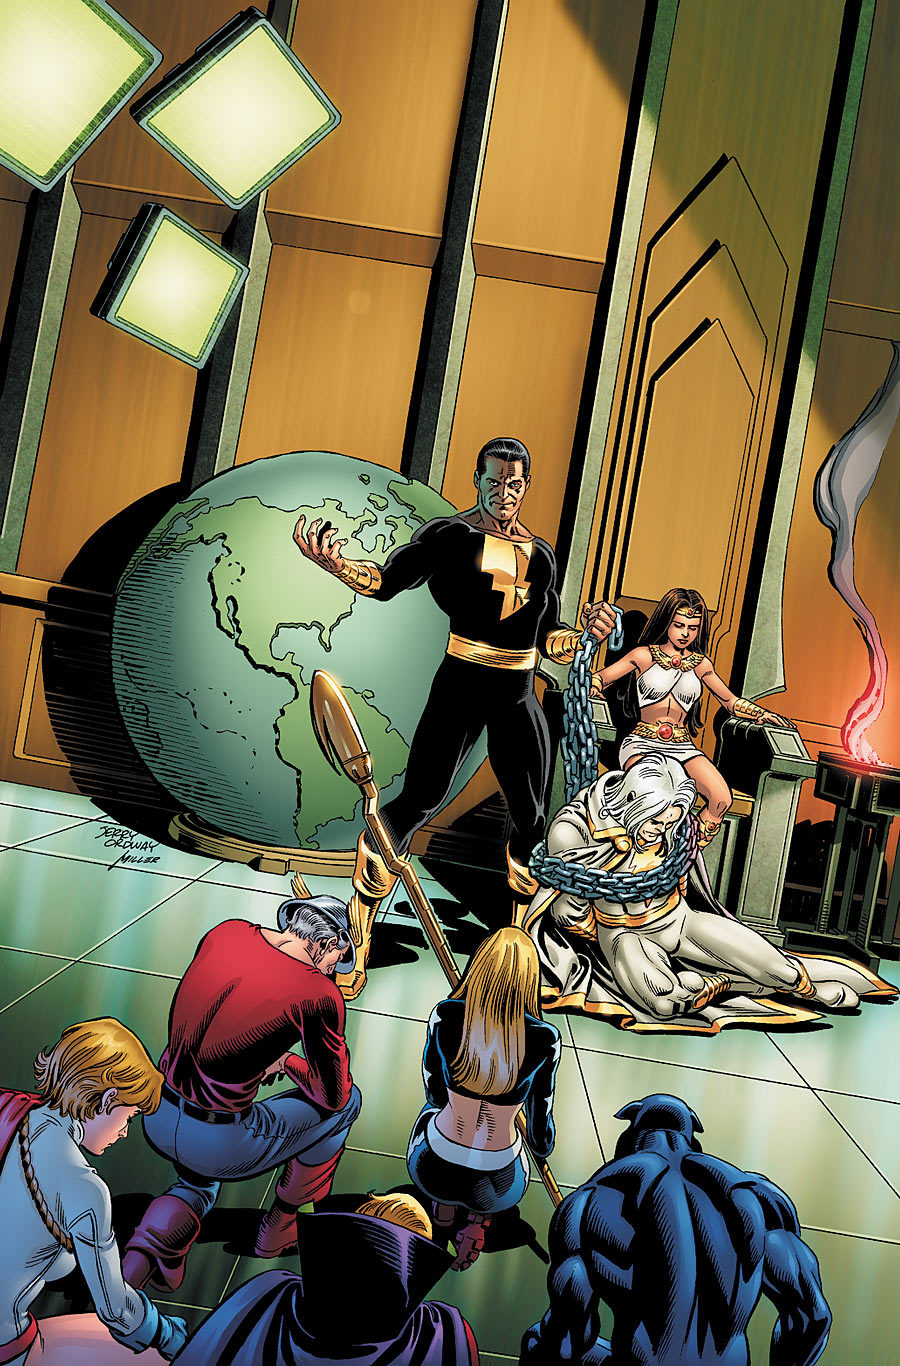 Justice Society of America Vol 3 24 Ordway Variant Textless.jpg